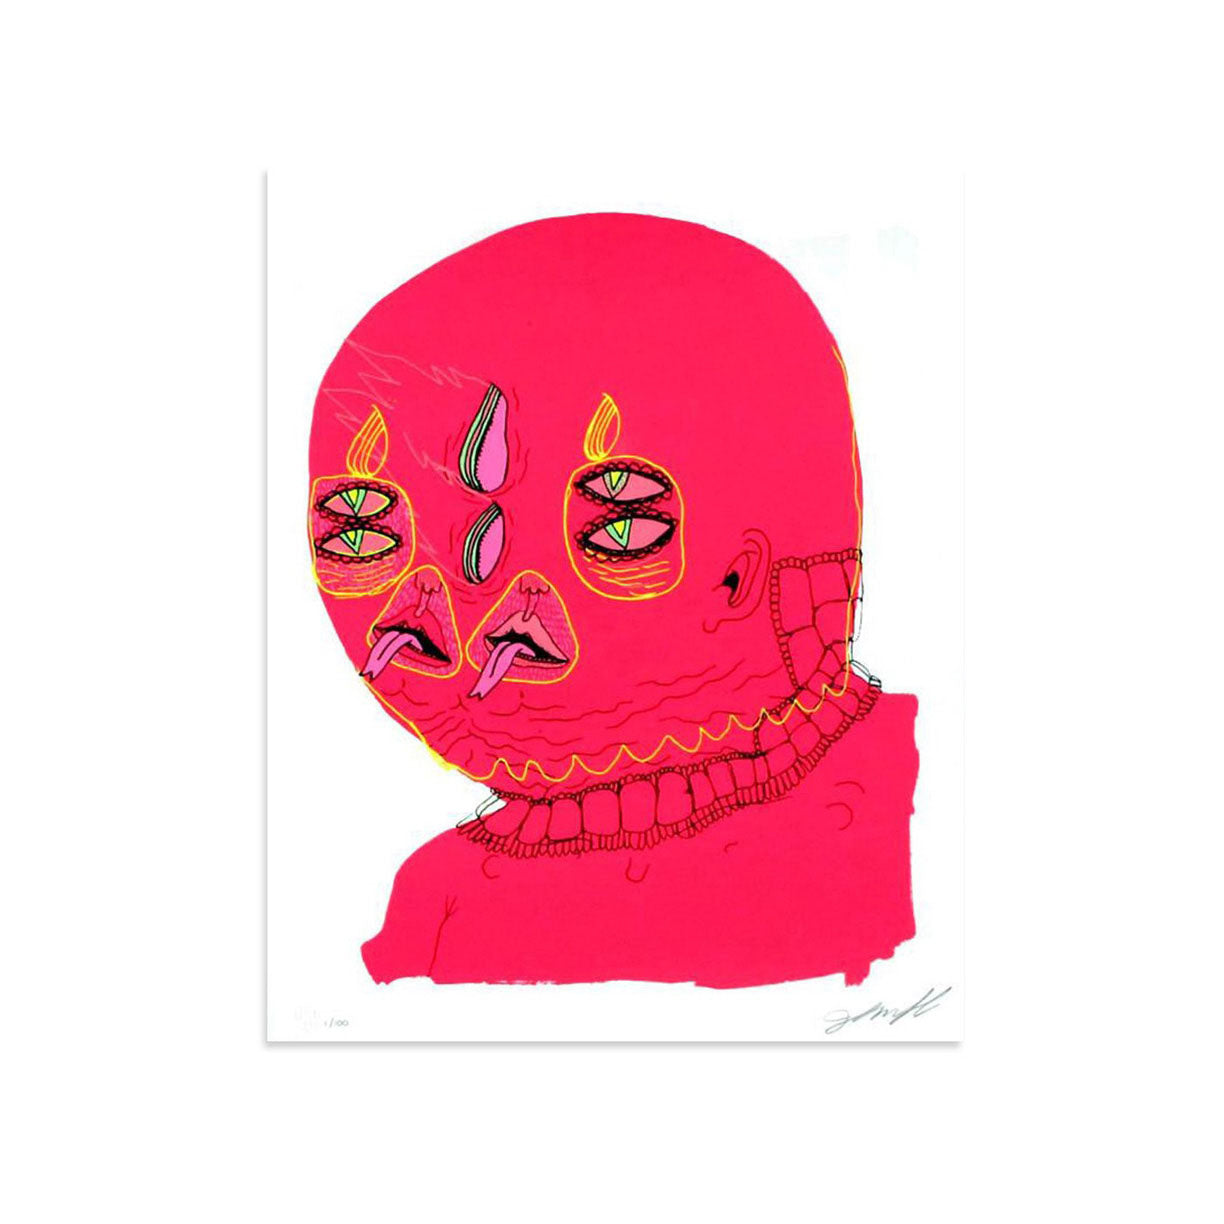 Untitled (Pink Head) by John Gourley | Archive | Poster Child Prints